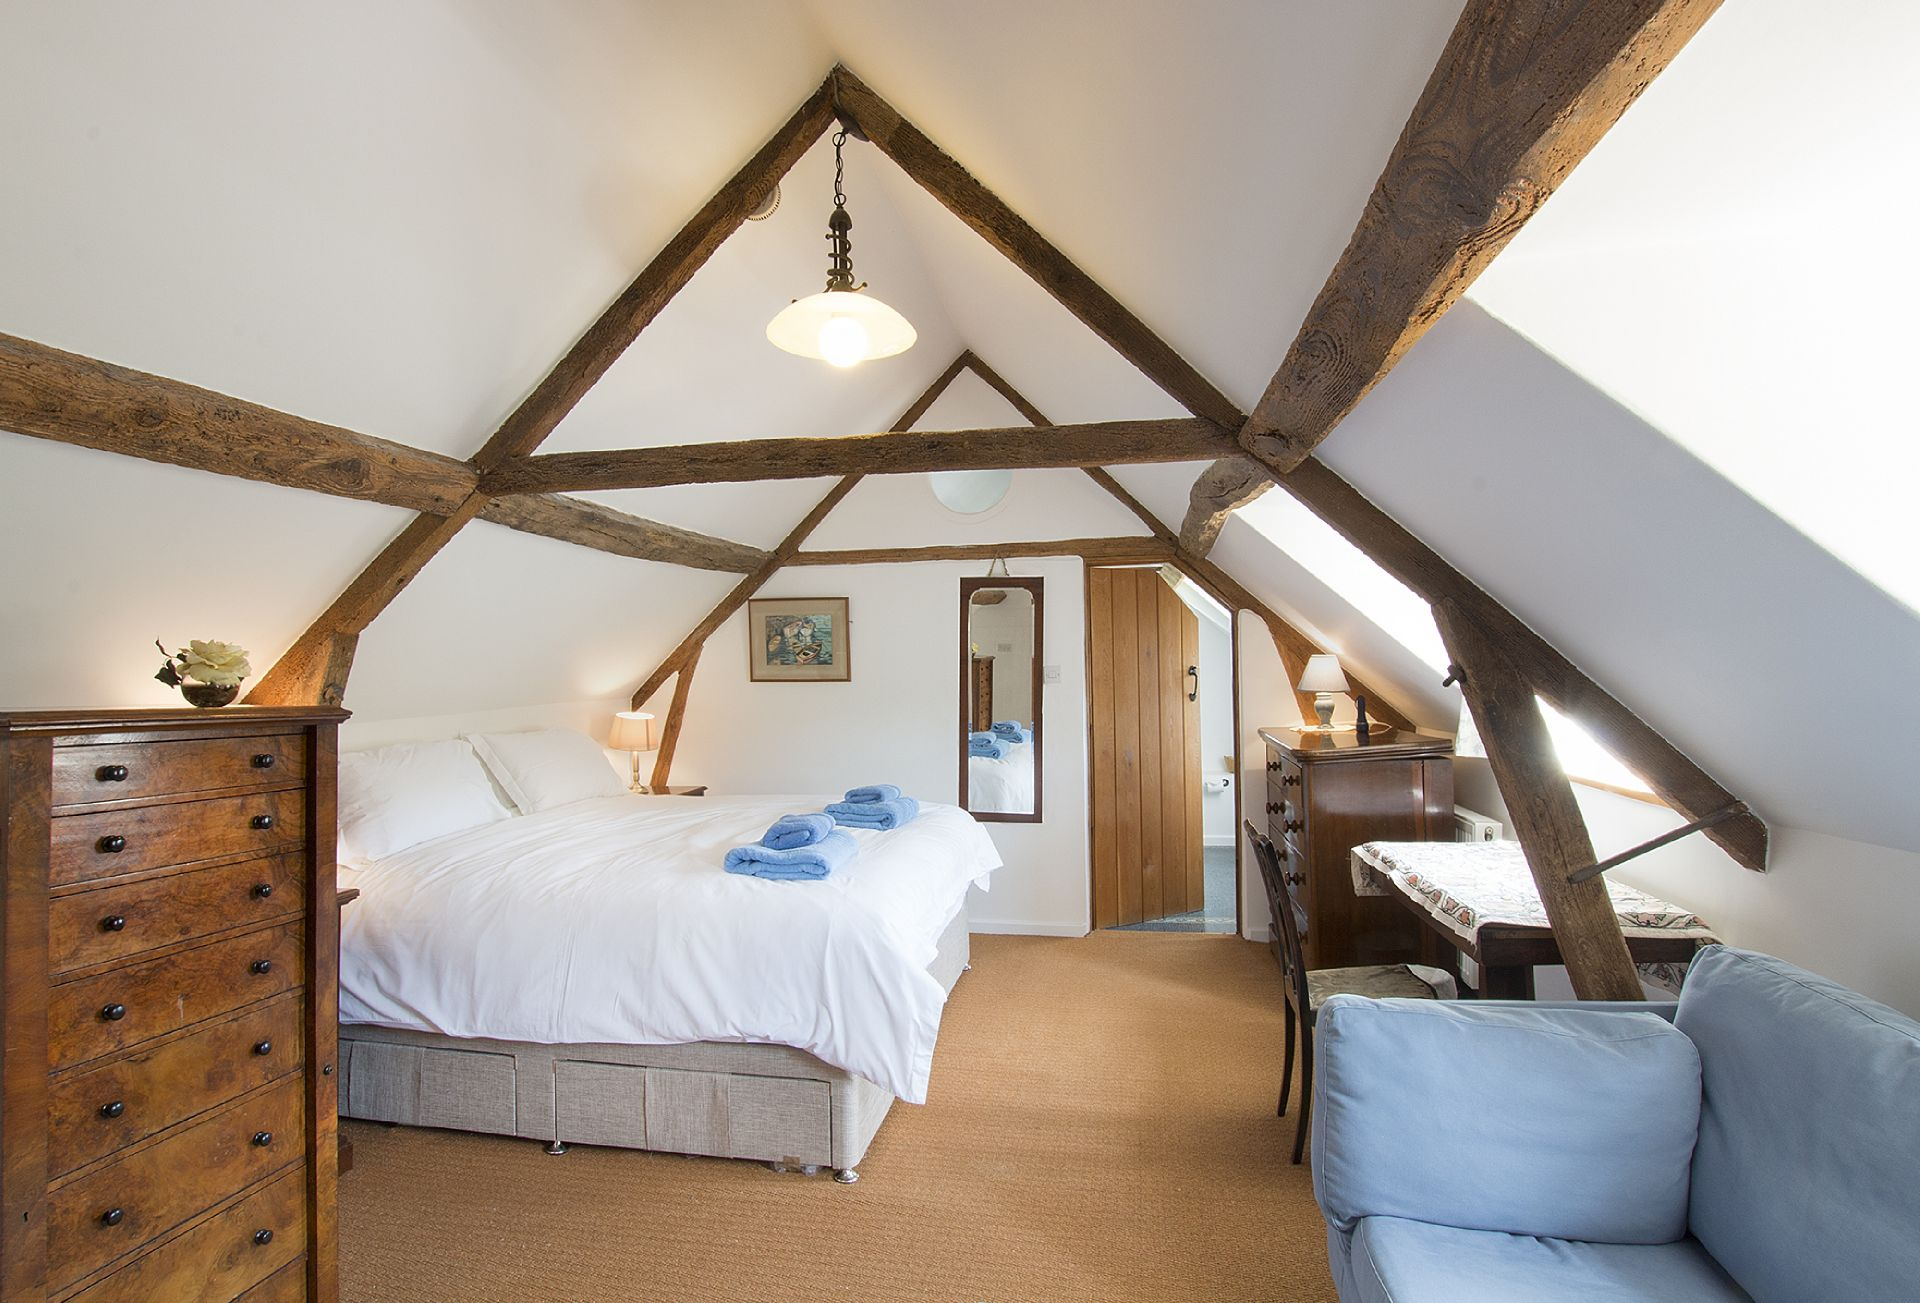 First floor: Double bedroom with 6' zip and link bed which can convert to two 3' singles upon request